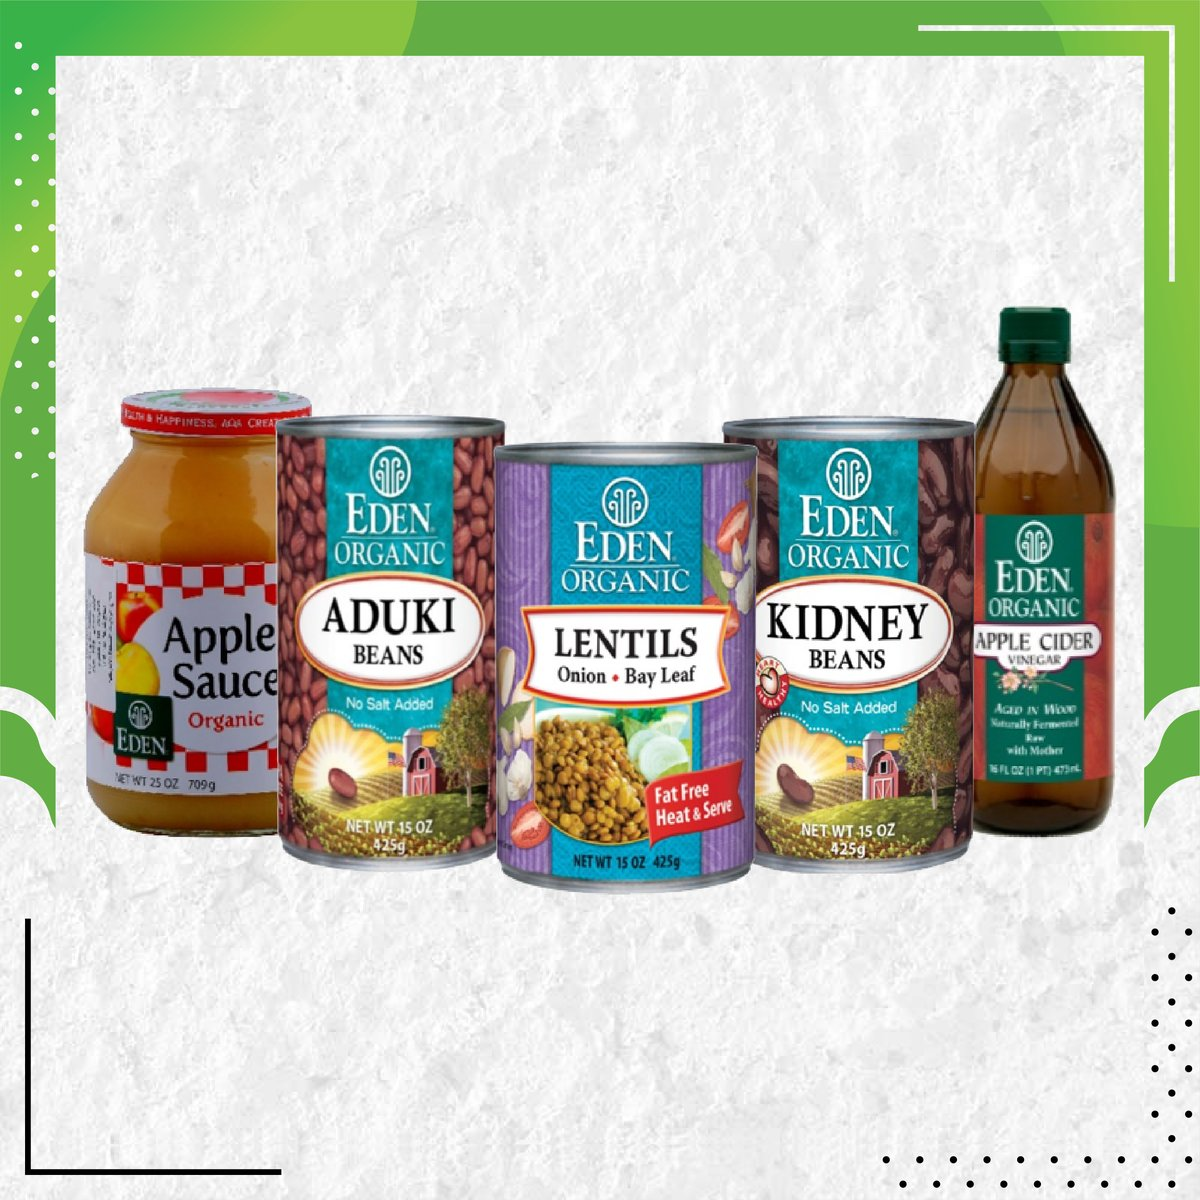 Check out Eden Organic's range of products across all our branches 😍   #souqplanet #smartshopper #onlineshopping #groceryshopping #inabudhabi #dubai #alain #uae #vegan #madinatzayed #safeplanet #stayhome #socialdistancing https://t.co/sDsdle1S4n